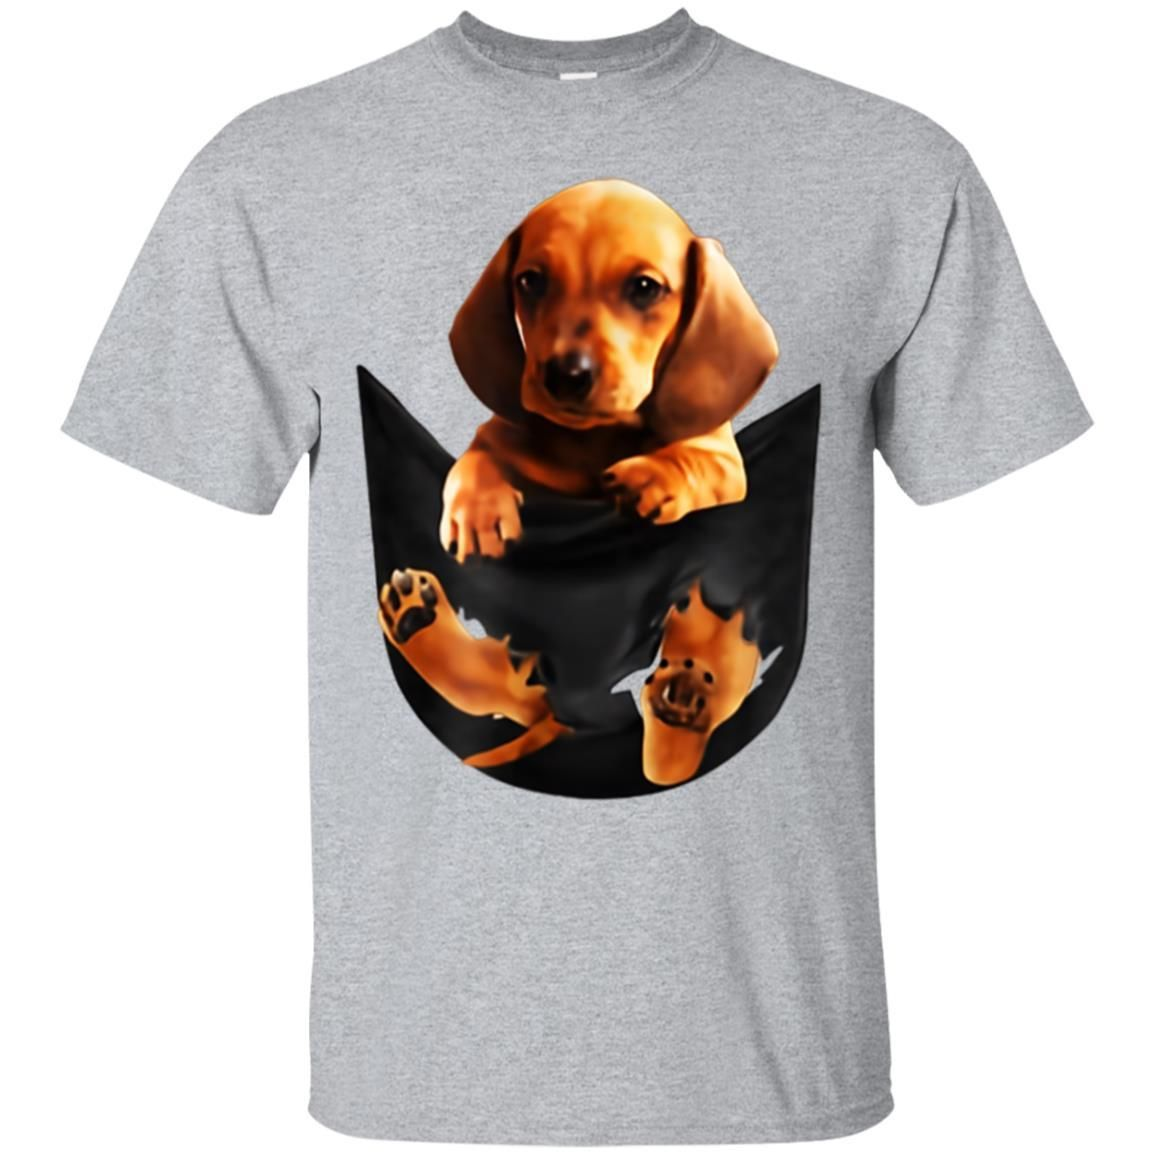 Awesome Dog In Your Pocket Gold Dachshund Puppy Shirt Puppies